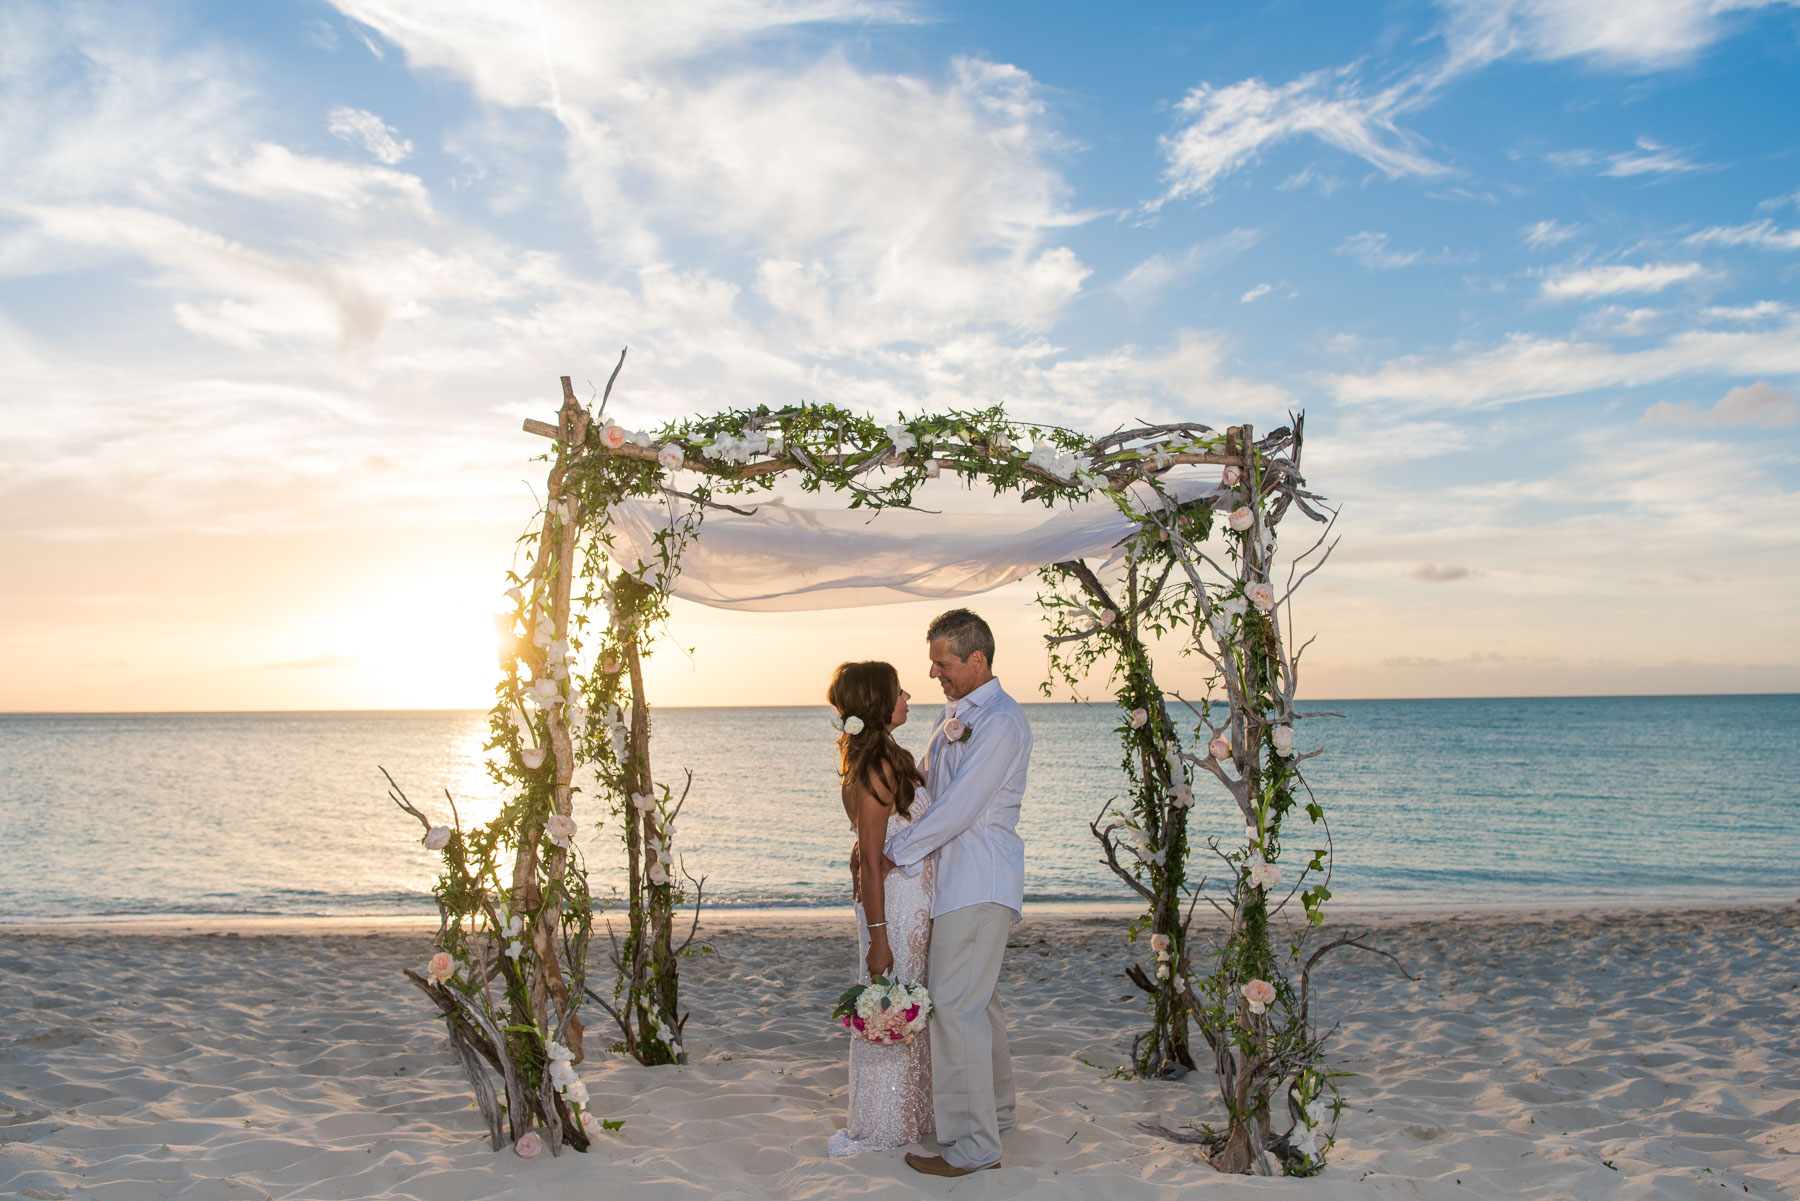 Family wedding at the regent grand turks and caicos islands 18 jul family wedding at the regent grand turks and caicos islands junglespirit Choice Image